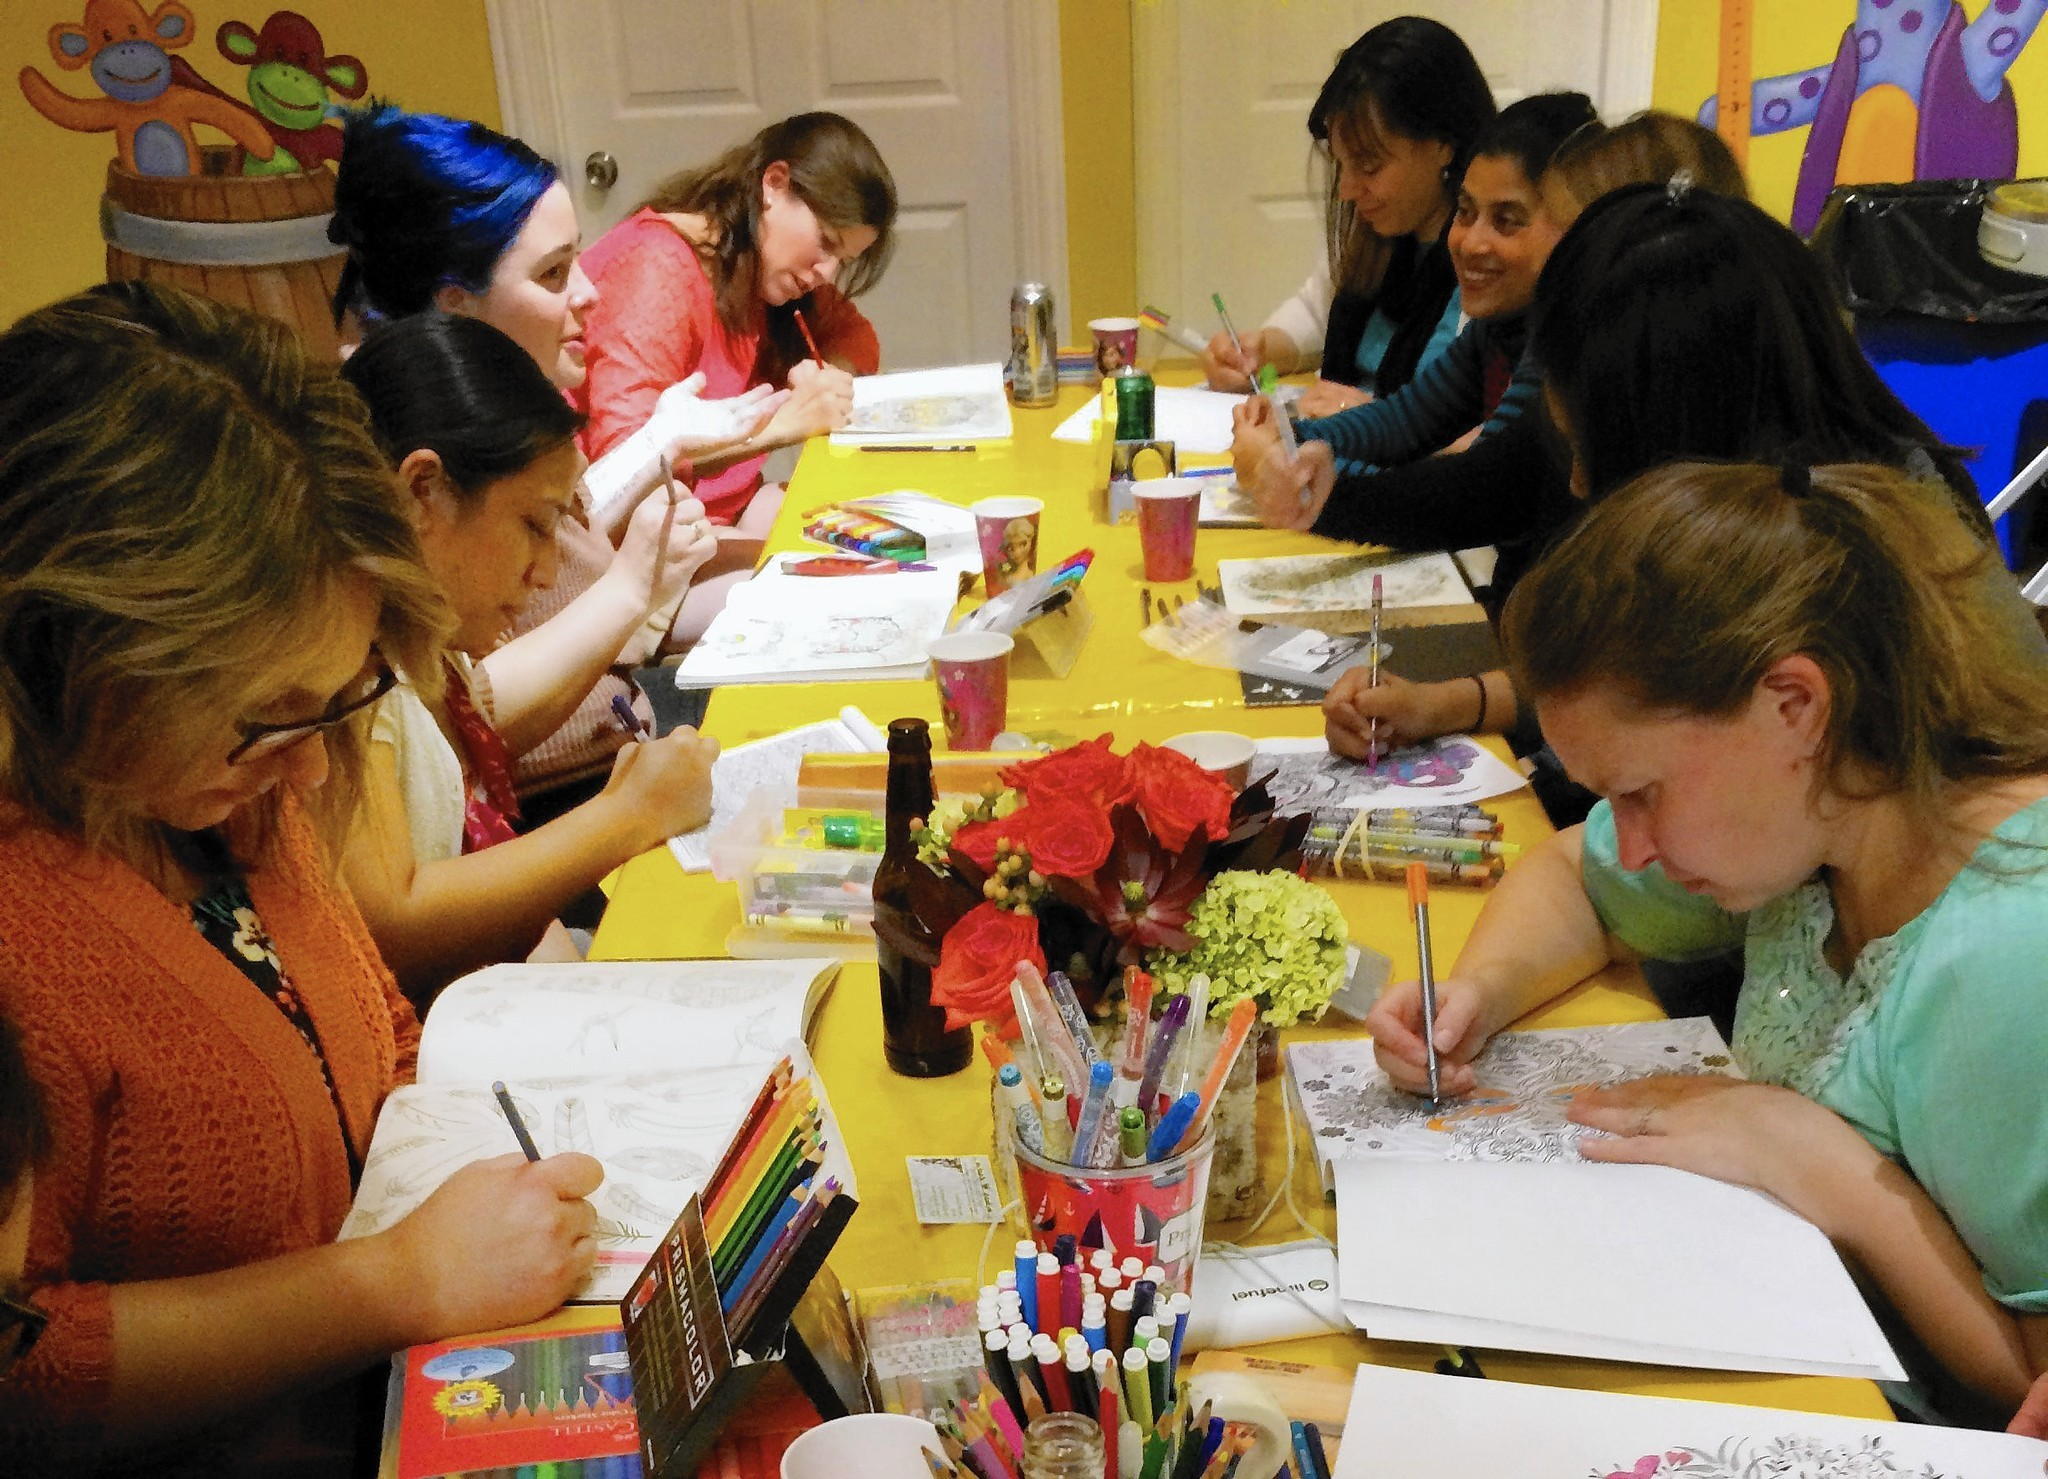 Adults Are Coloring Again And Sales Of Coloring Books For